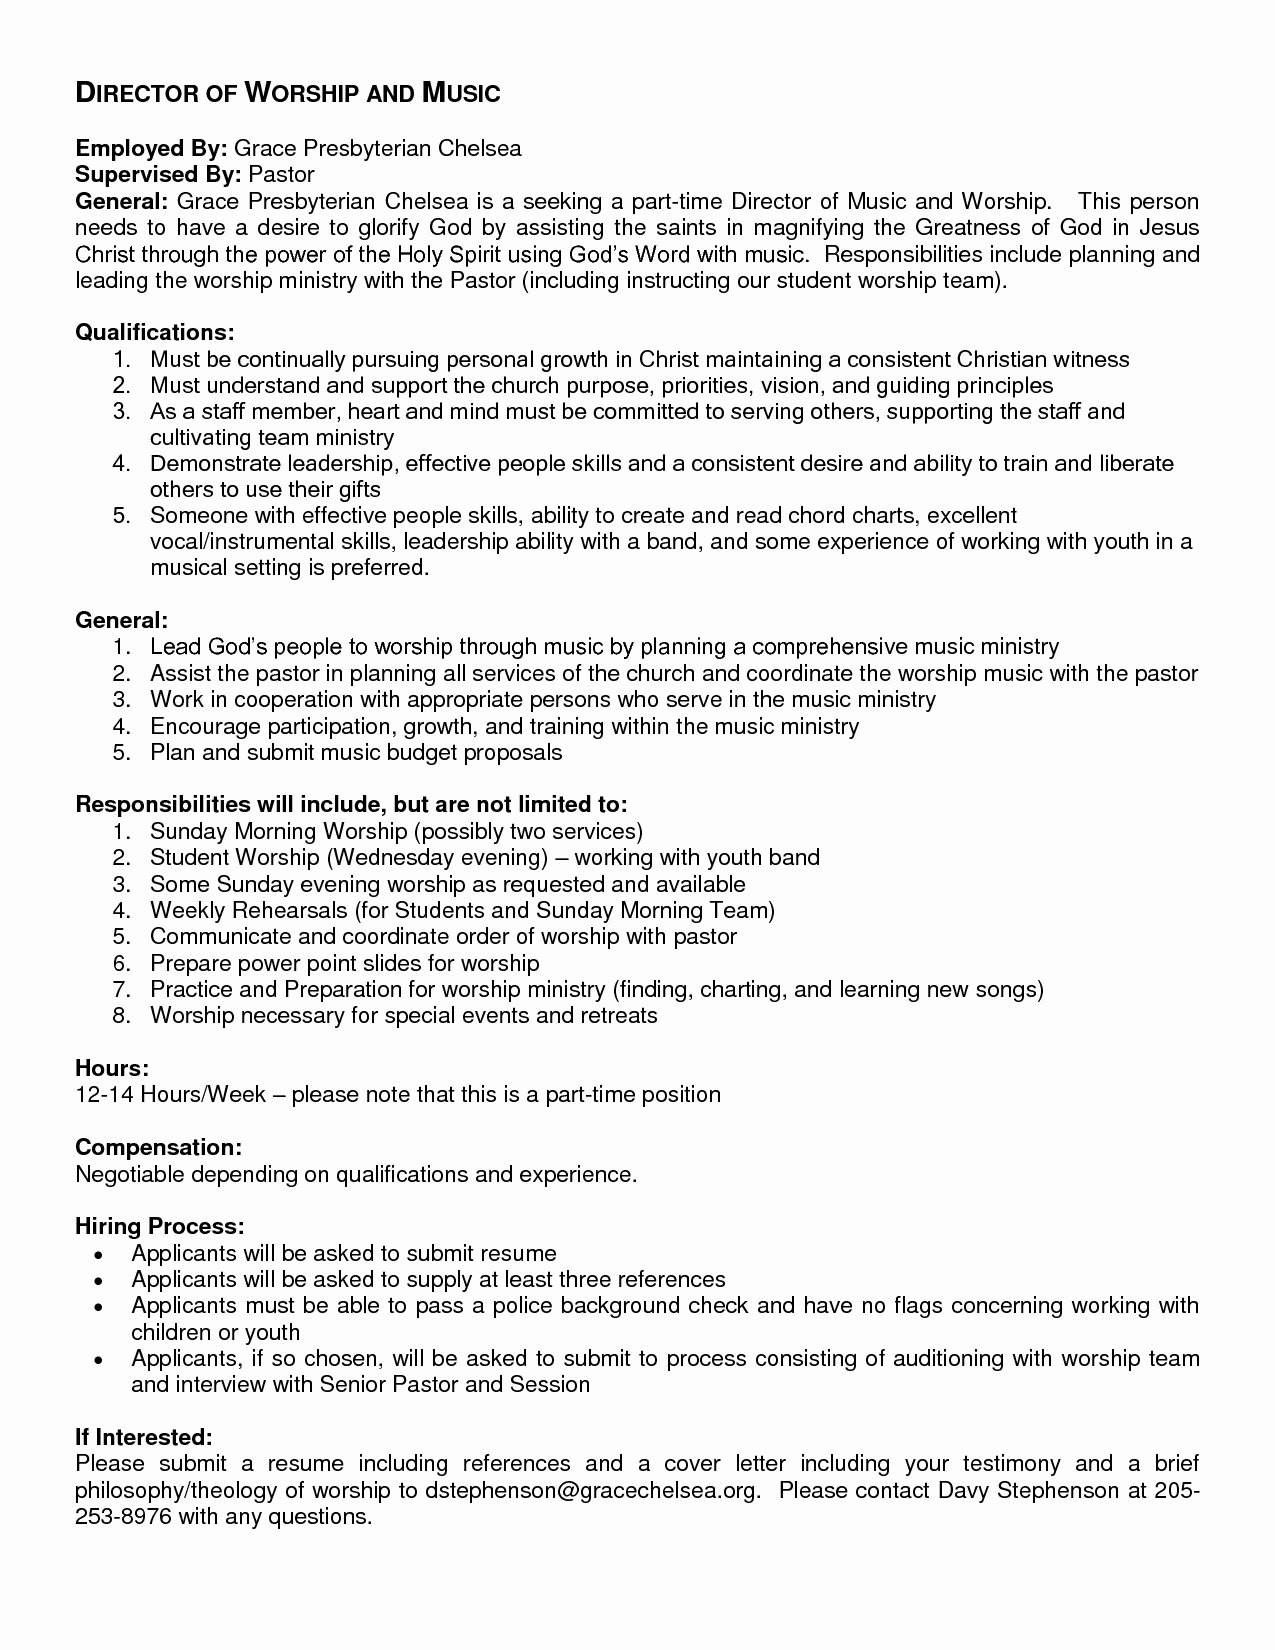 Youth Ministry Budget Template Luxury Proposal Letter for Youth Ministry